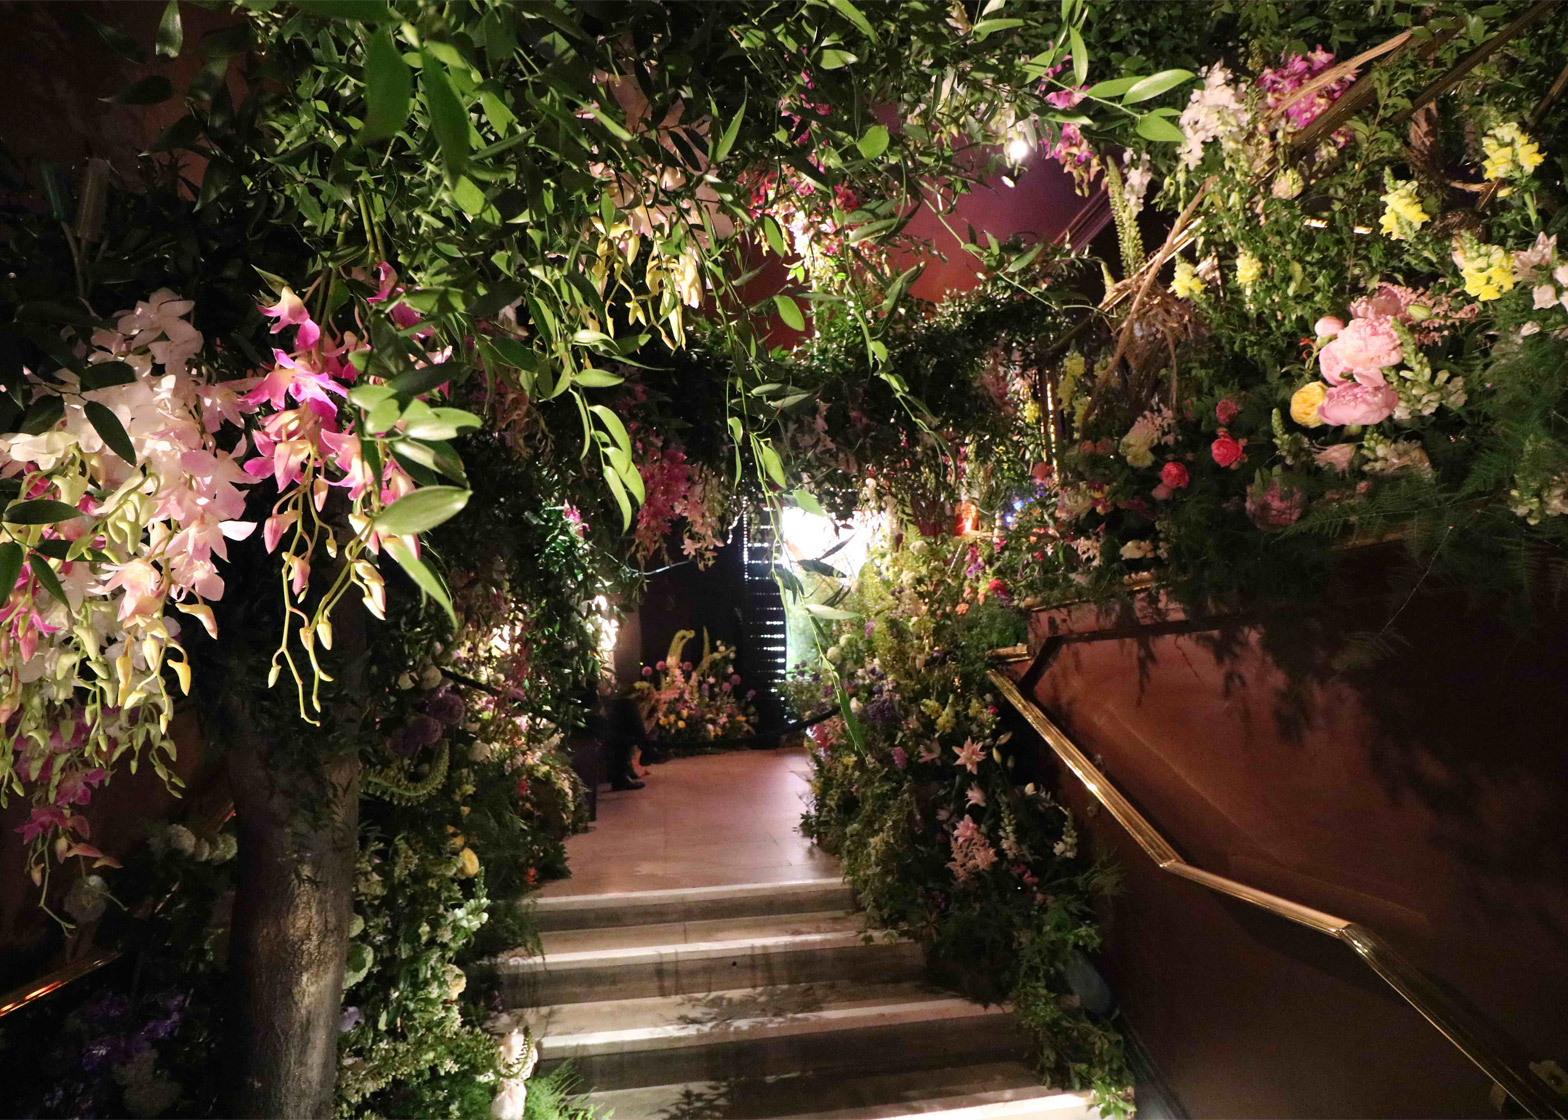 Sketch restaurant filled with floral installations for Flower Show